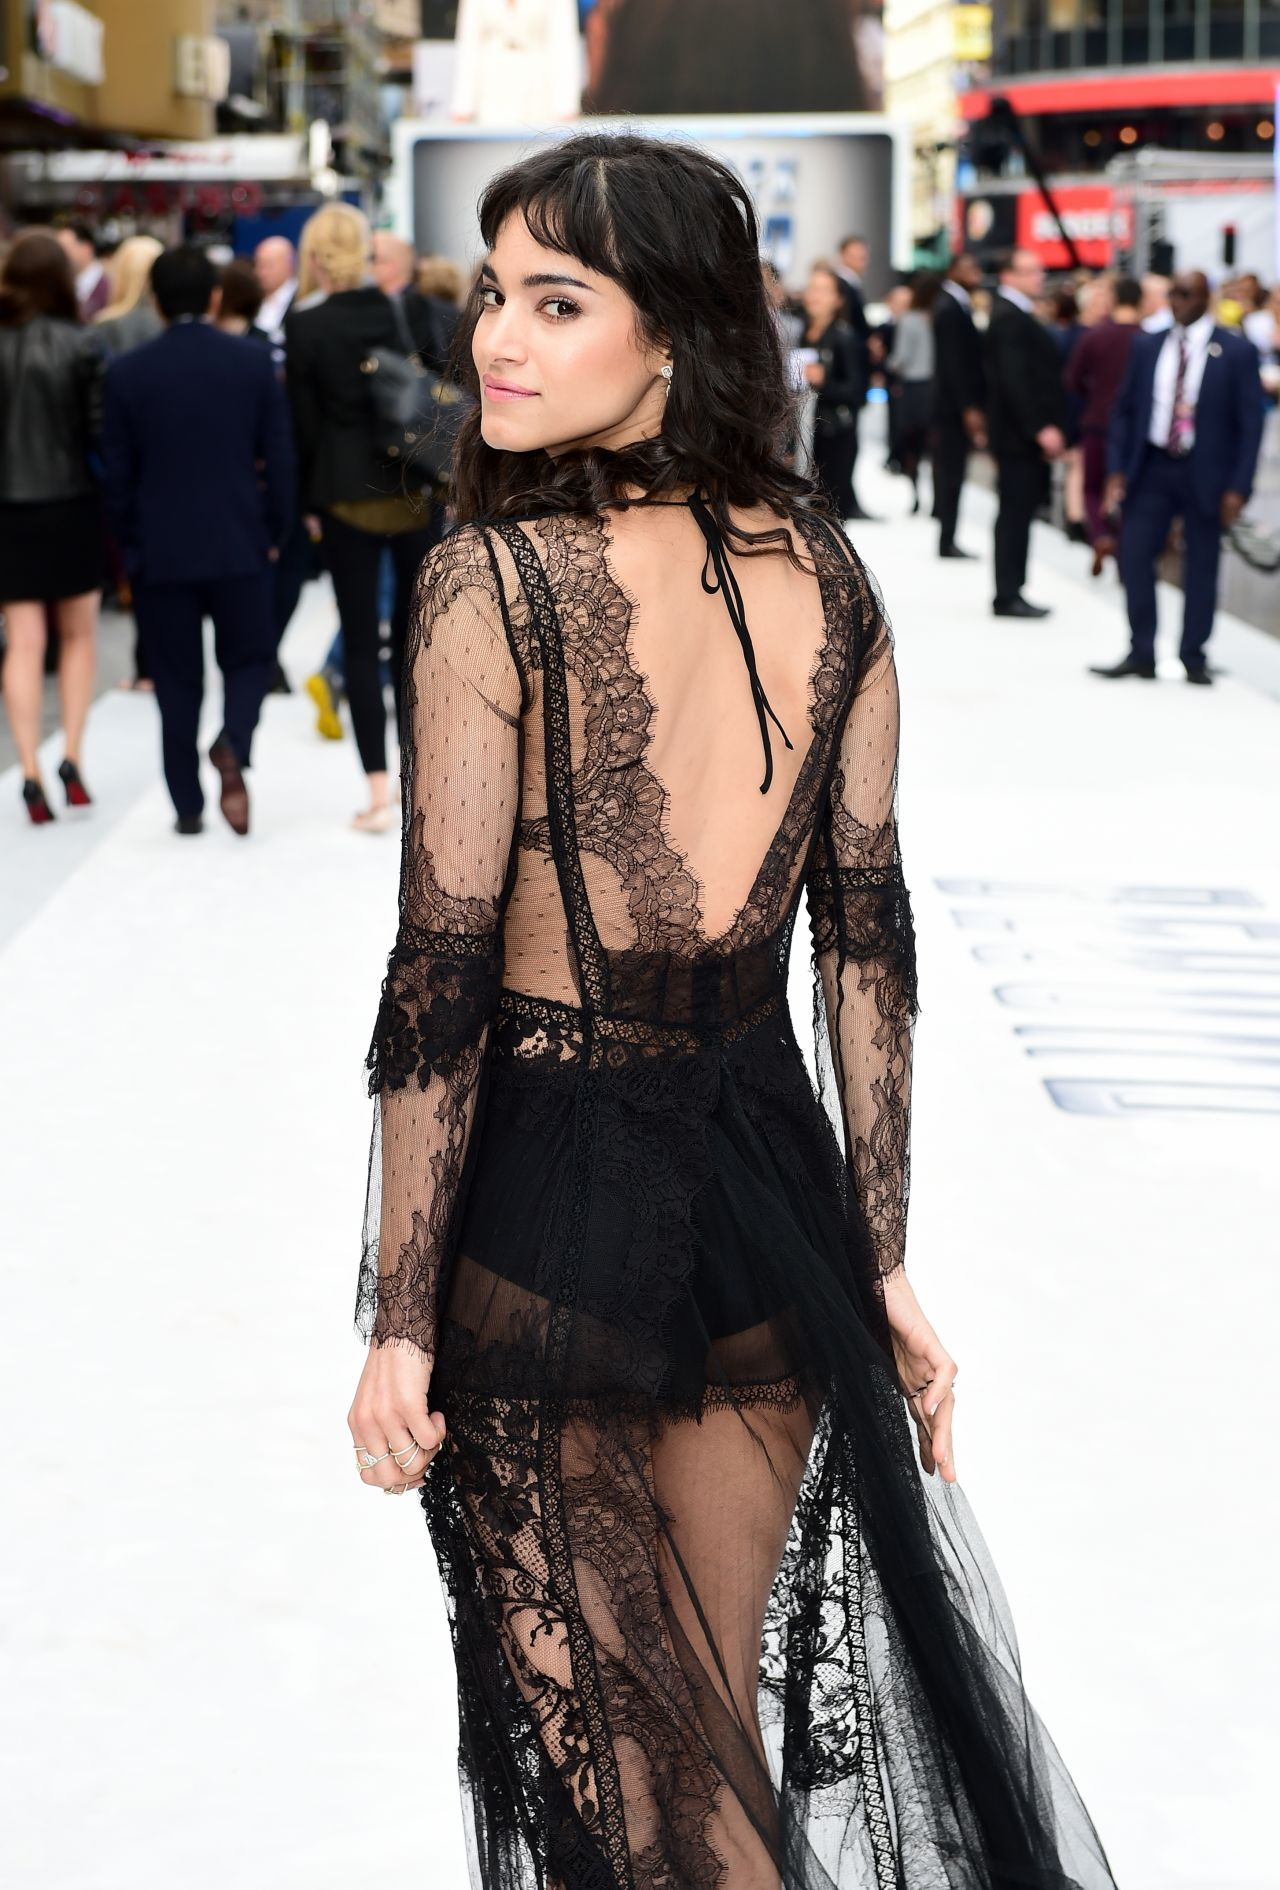 Sofia Boutella photo #729585